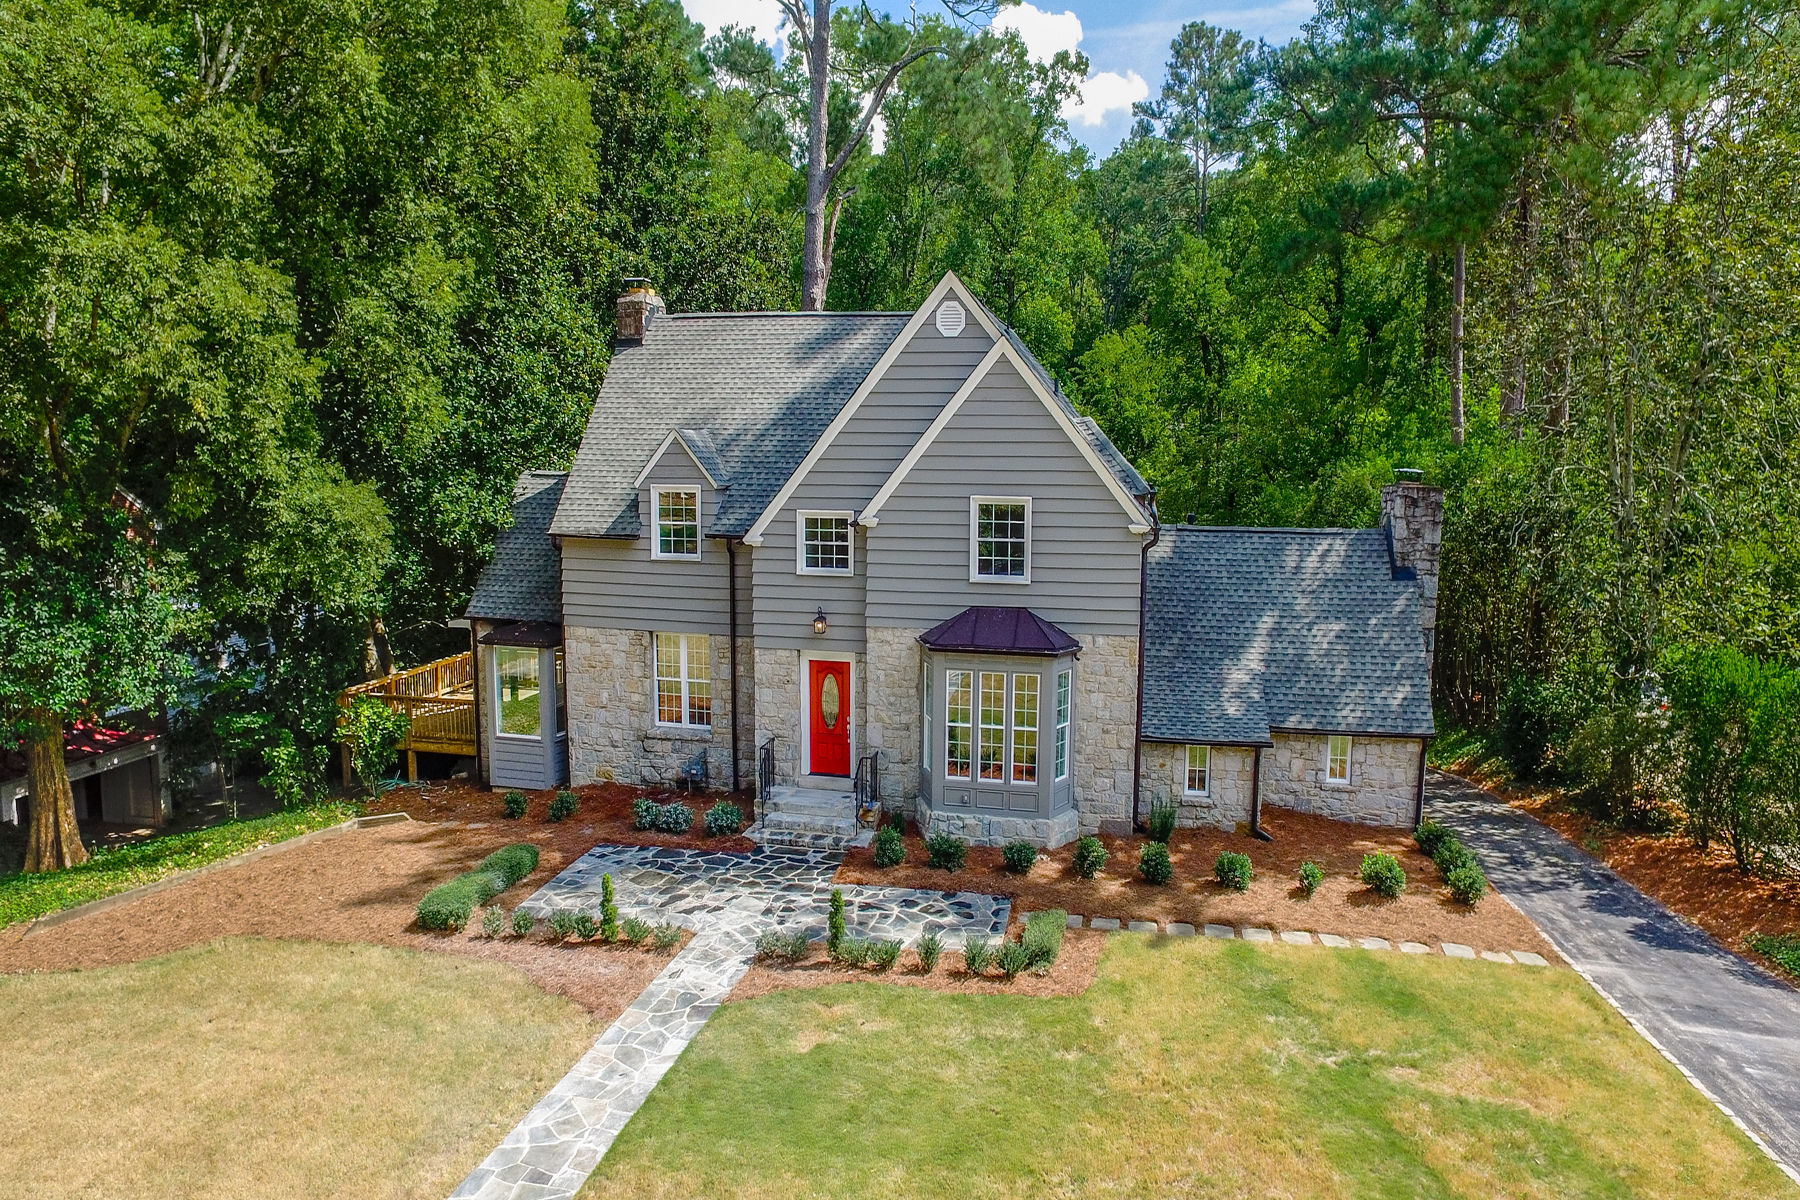 一戸建て のために 売買 アット Inviting Cottage in Tranquil Haynes ManorBuckhead Estate Setting 510 Westover Drive NW Haynes Manor, Atlanta, ジョージア, 30305 アメリカ合衆国